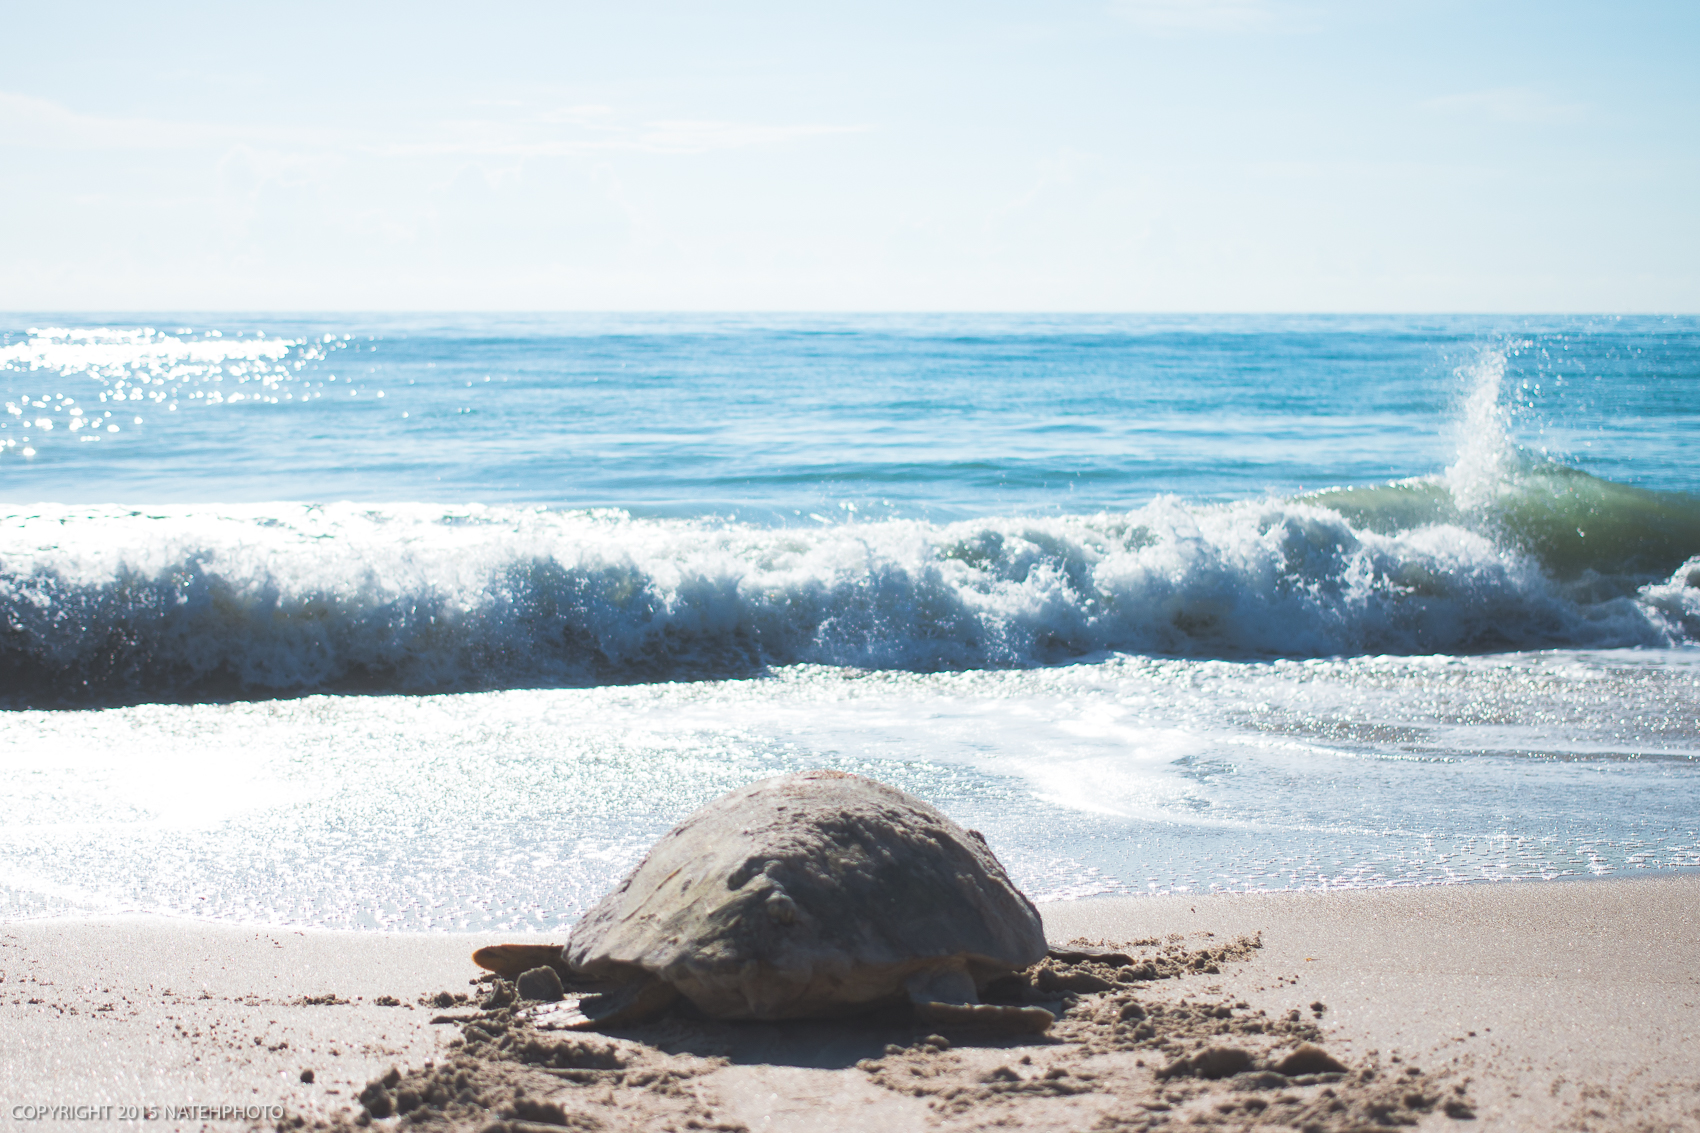 Sea Turtle in Vero Beach, Florida. Video by Nathaniel Harrington (@natehphoto)